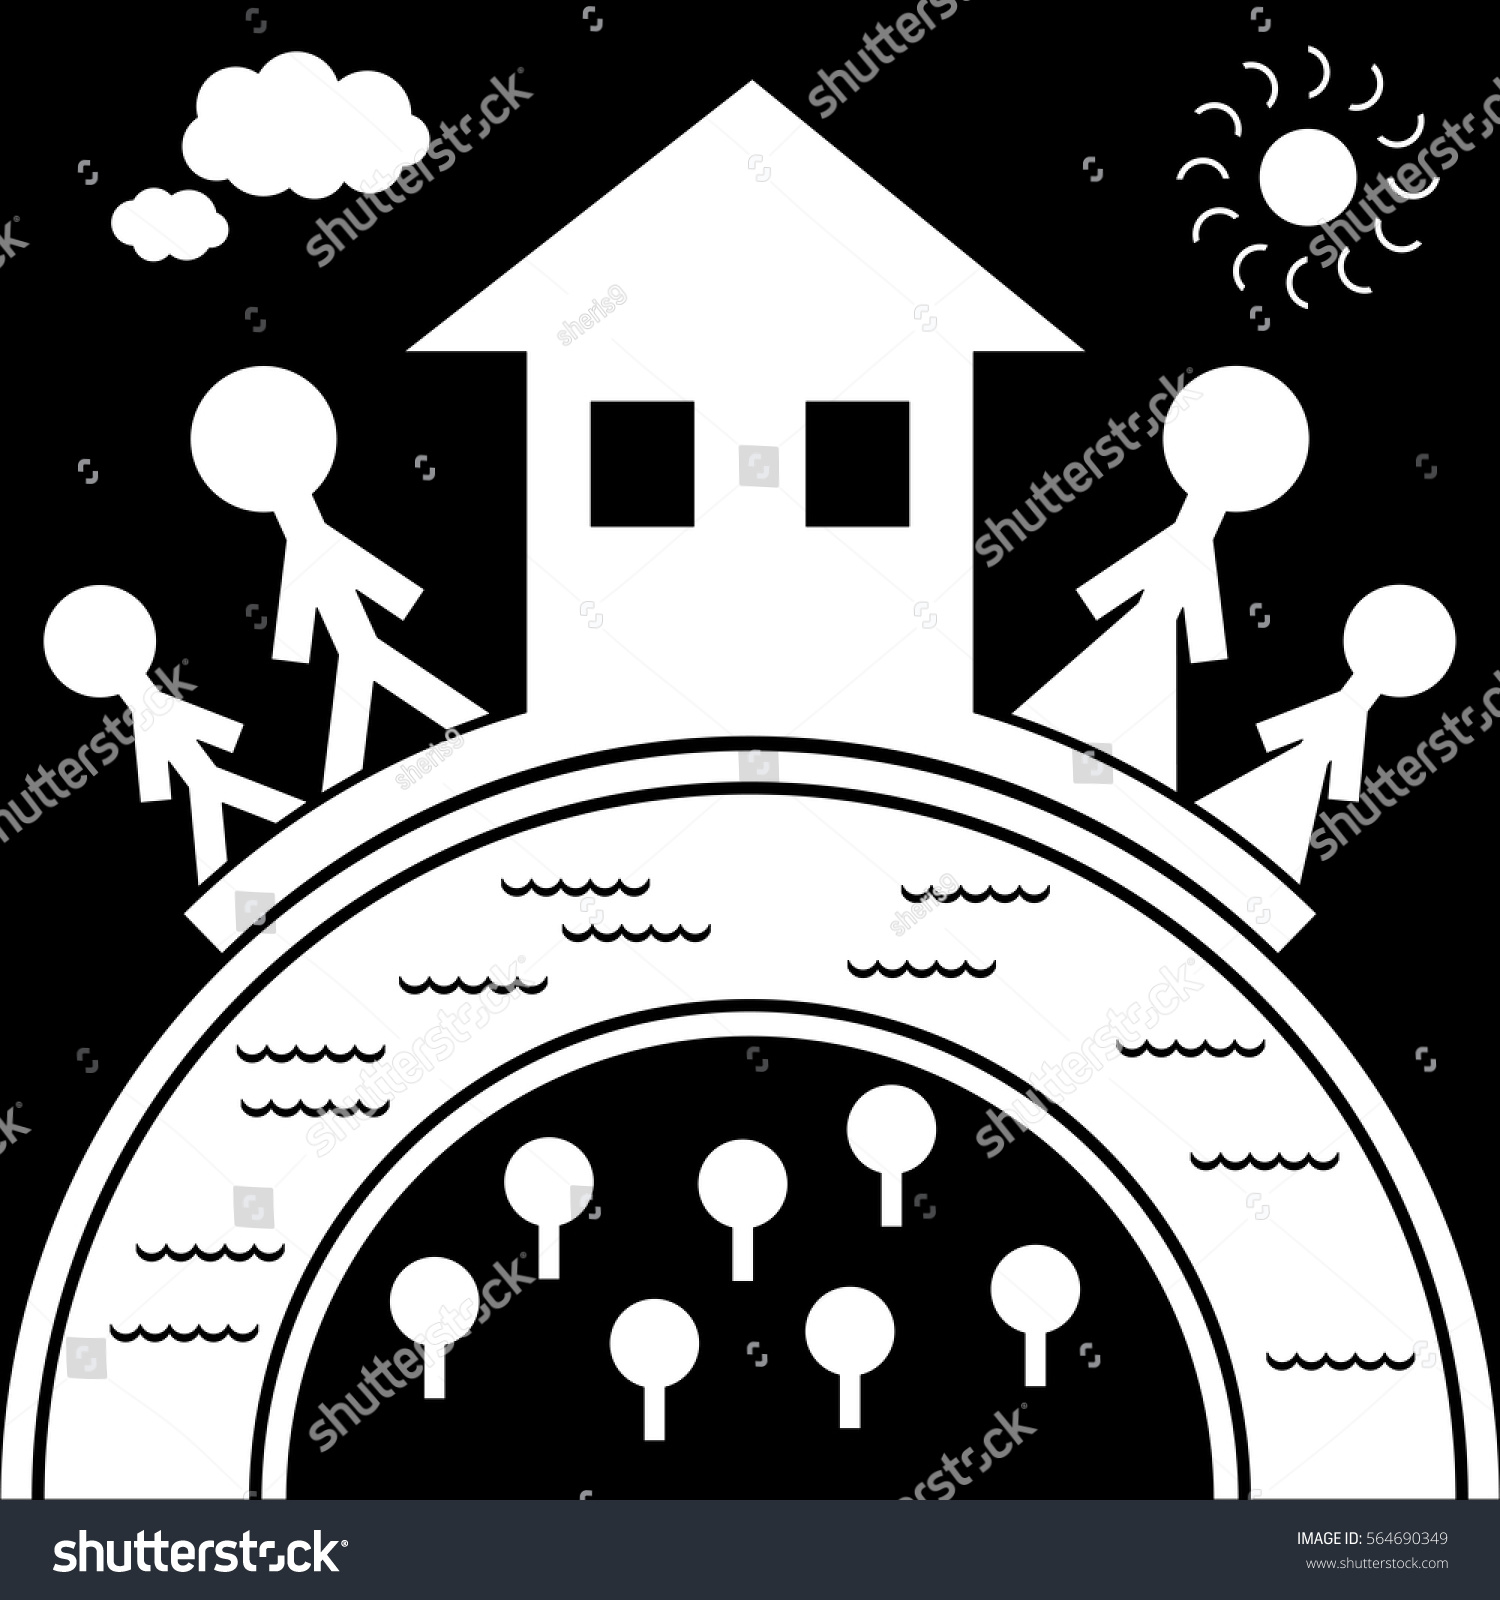 Family love house basis family happiness stock vector 564690349 family love and house is the basis of family happiness it is symbol for buycottarizona